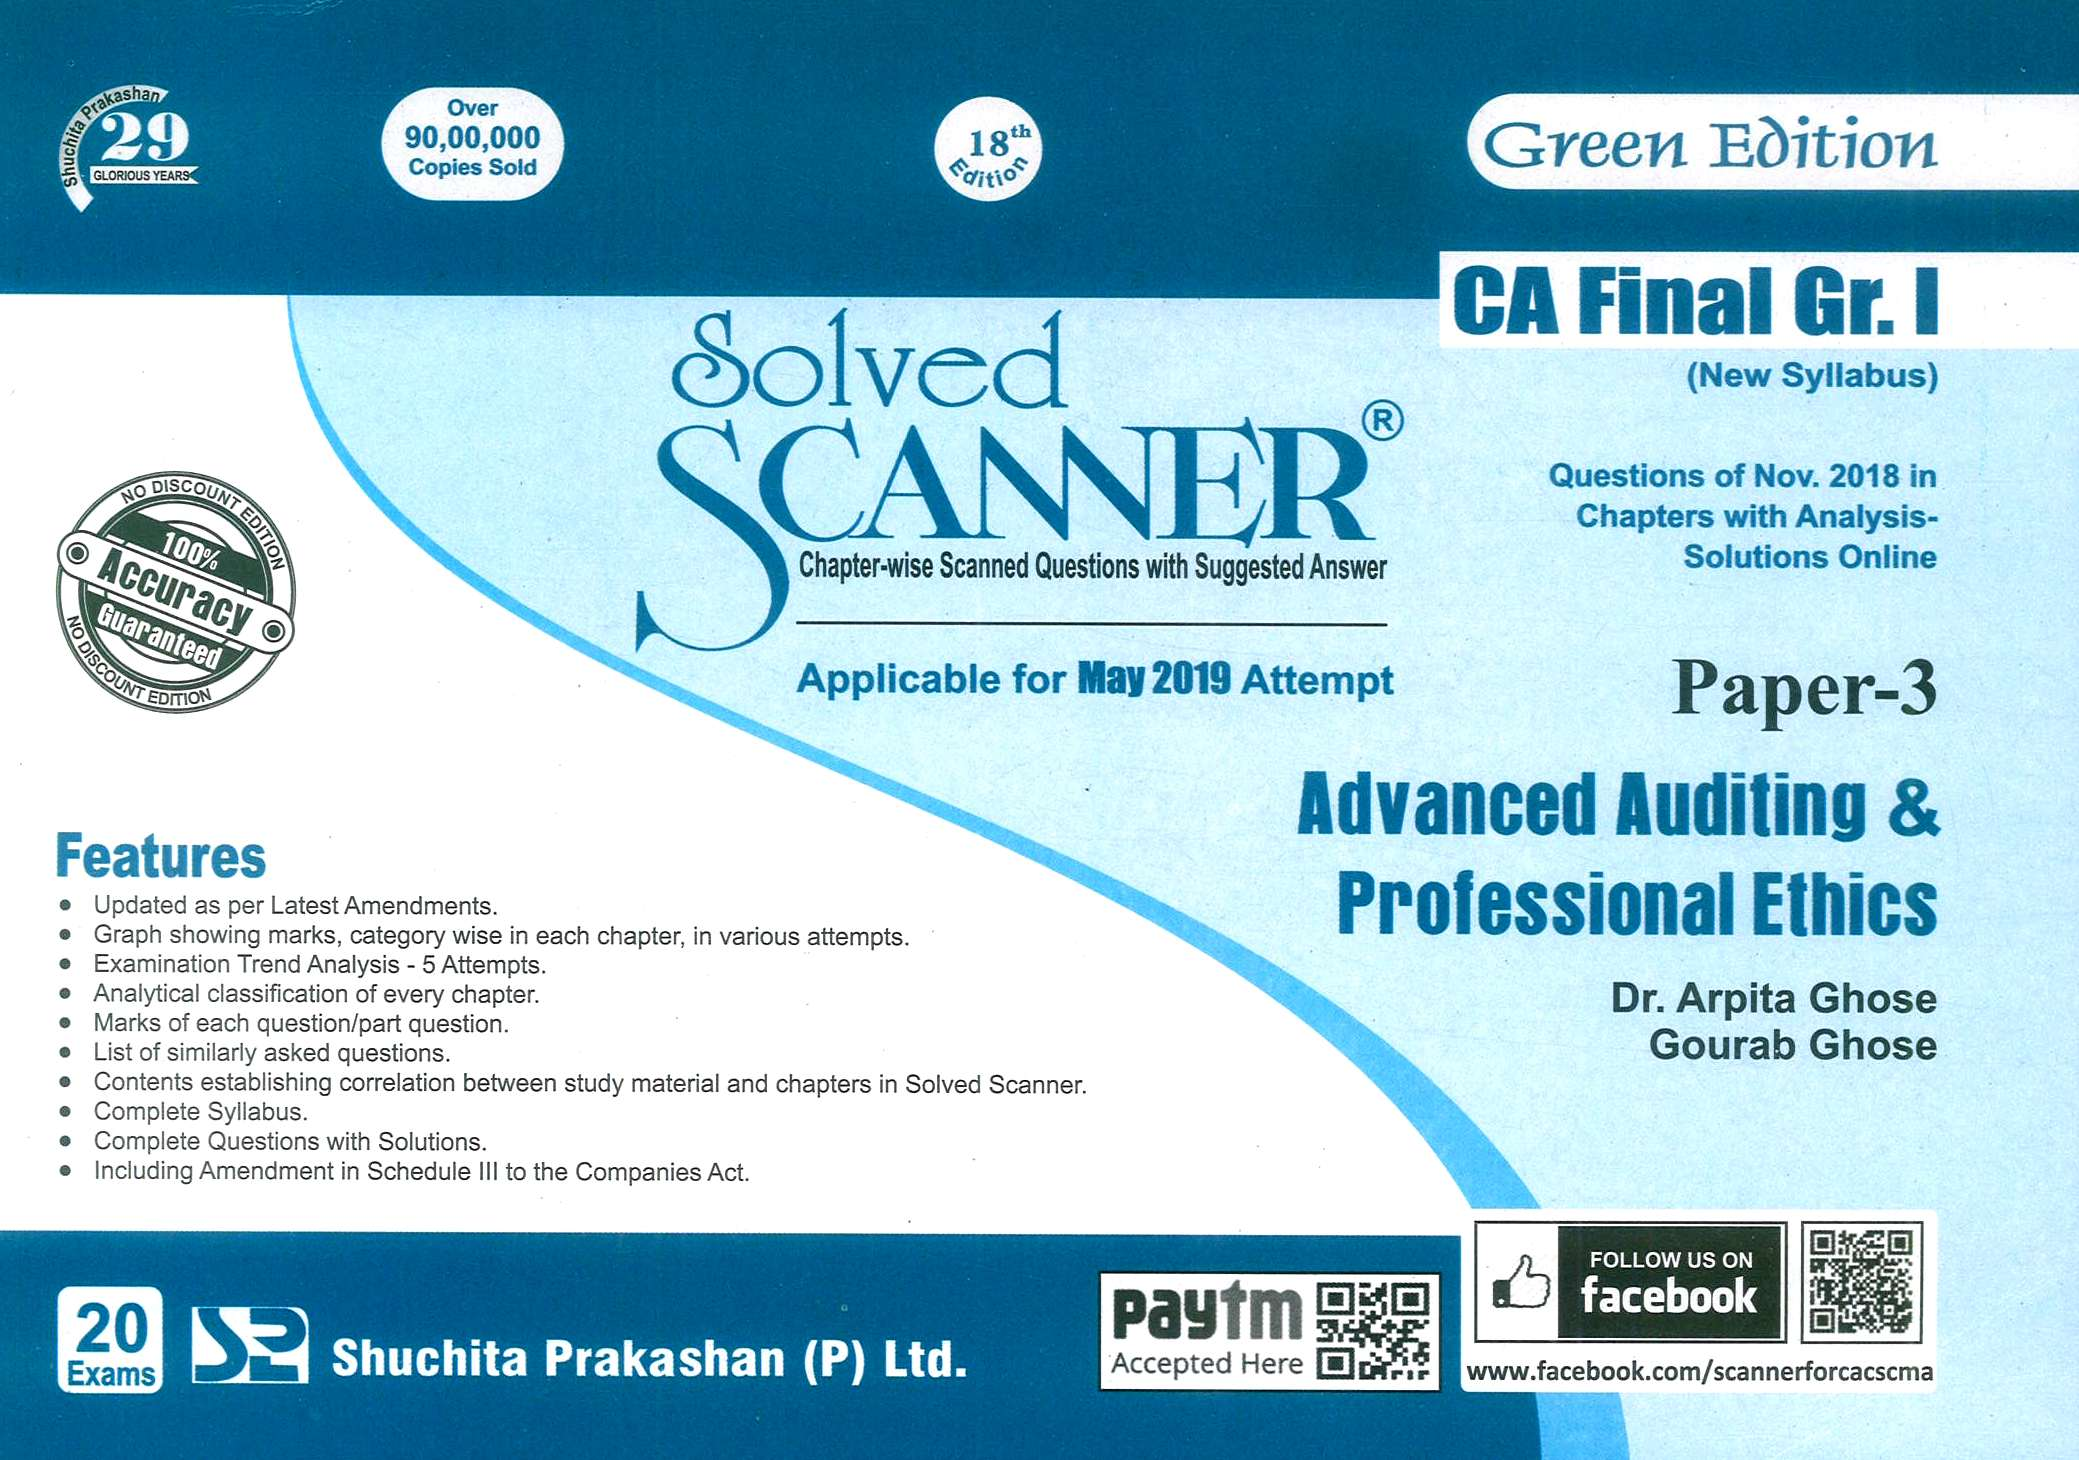 Shuchita Solved Scanner of Advanced Auditing & Professional Ethics CA Final Group-I Paper 3 Green Edition for May 2019 Exam ( New Syllabus) by Dr. Arpita Ghose and Gourab Ghose (Shuchita Prakashan) Edition 2019